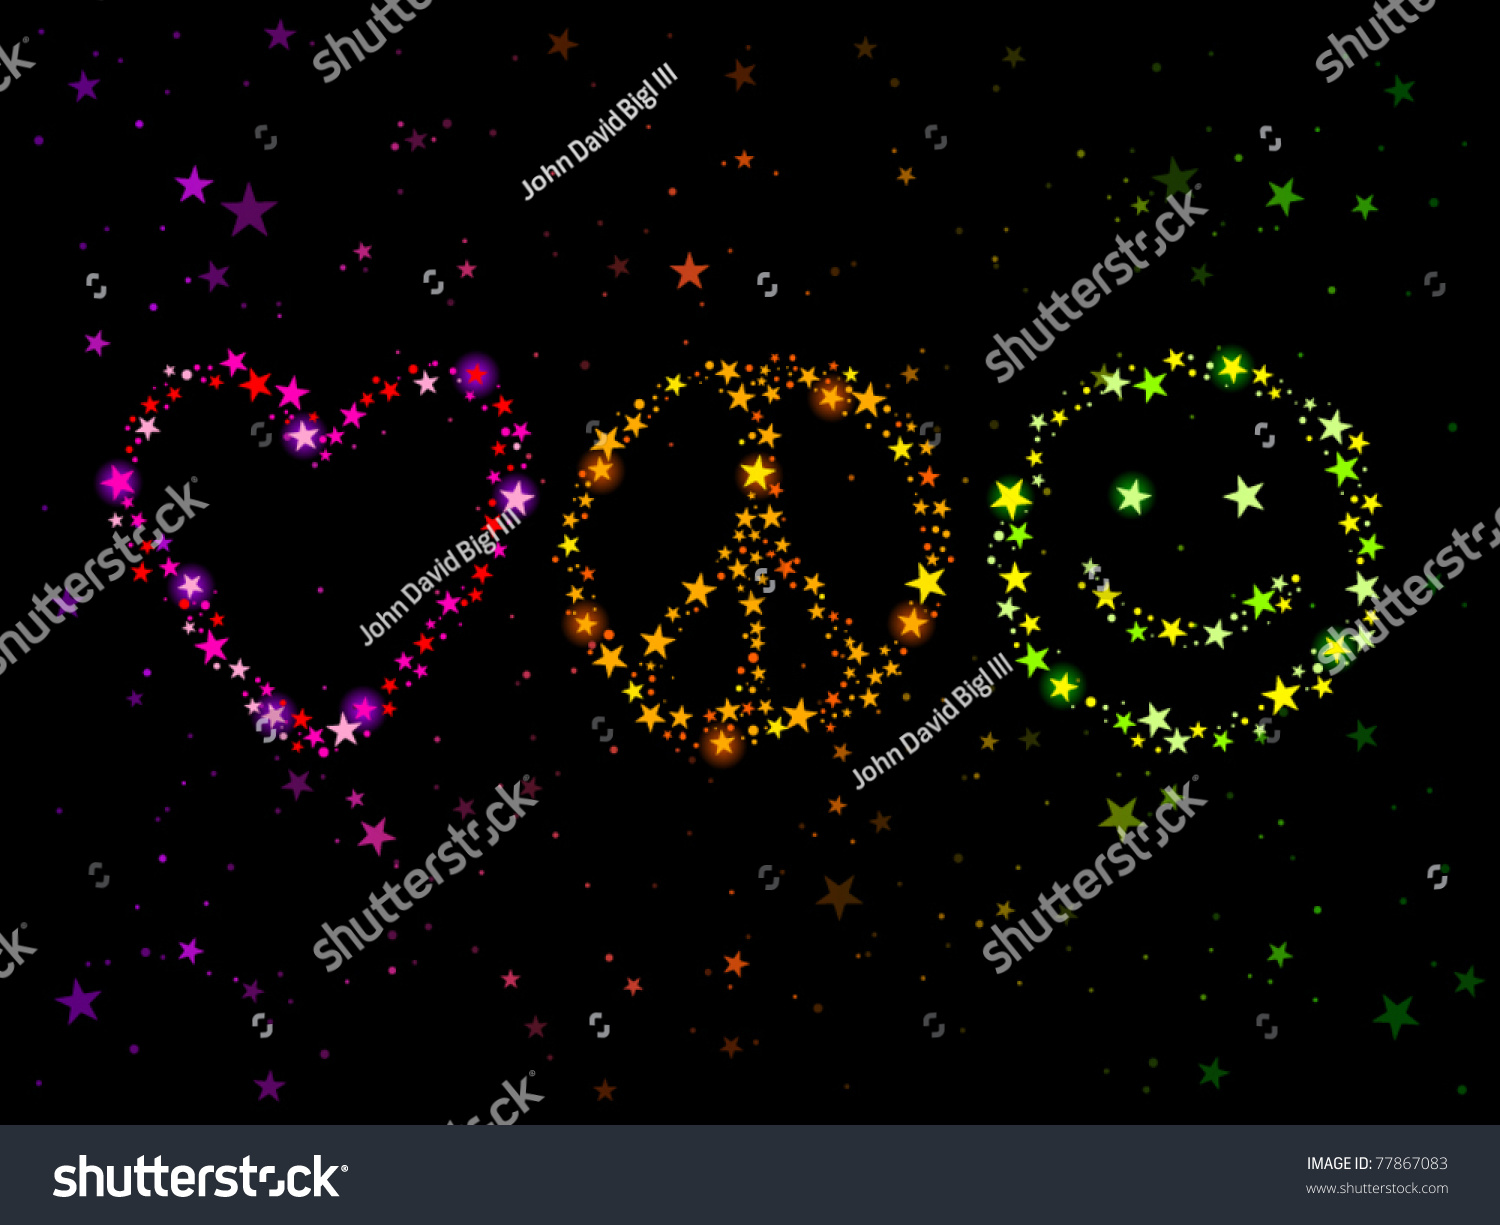 Constellations forming love peace happiness symbols stock vector constellations forming love peace and happiness symbols biocorpaavc Image collections